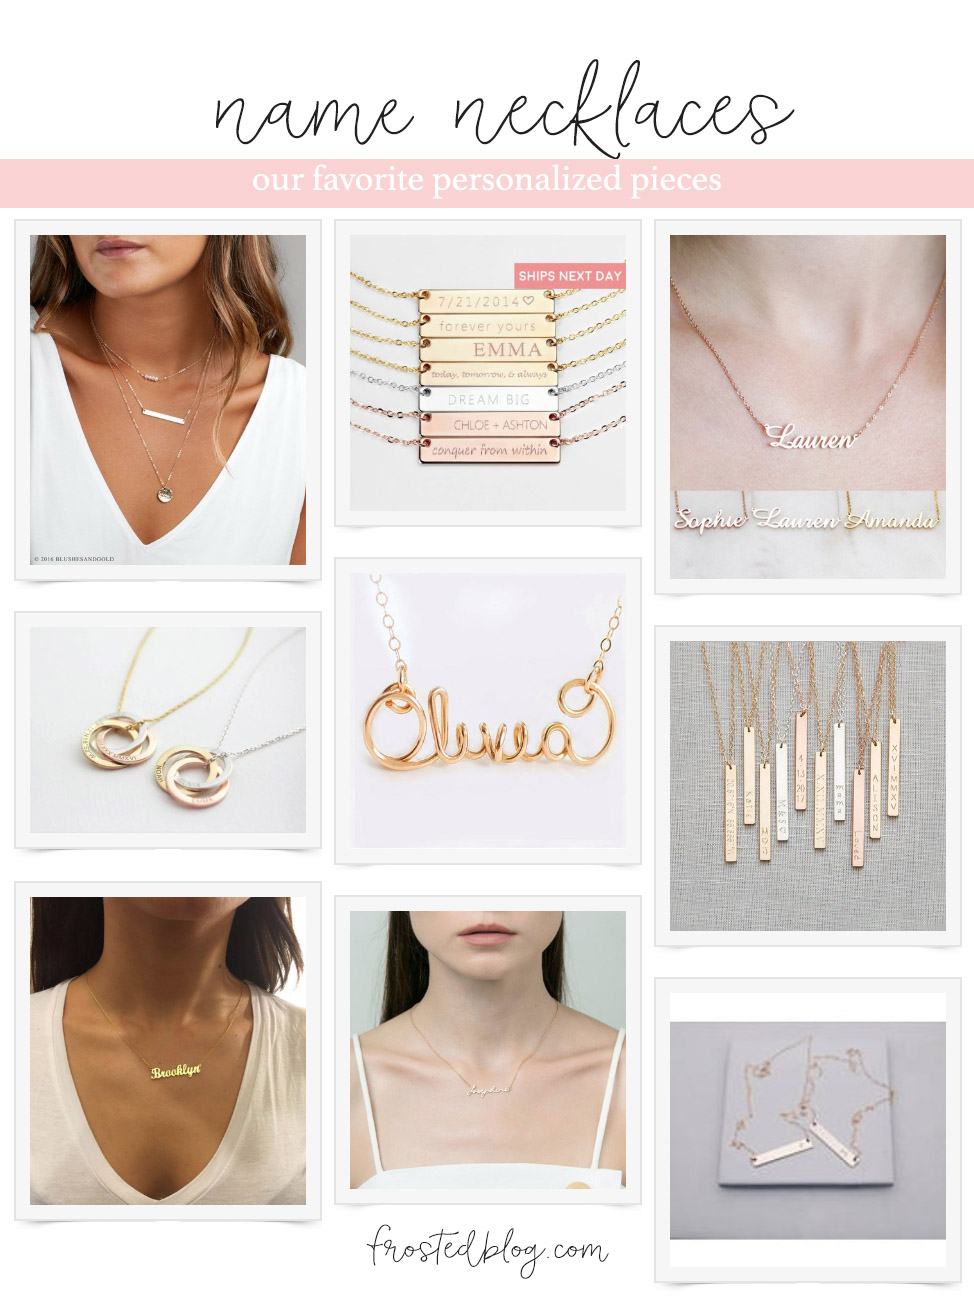 Name Necklace - Our Favorite Personalized Pieces and Where to Shop for Custom Jewelry via frostedblog frostedevents.com @frostedevents #namenecklace #jewelry #fashion